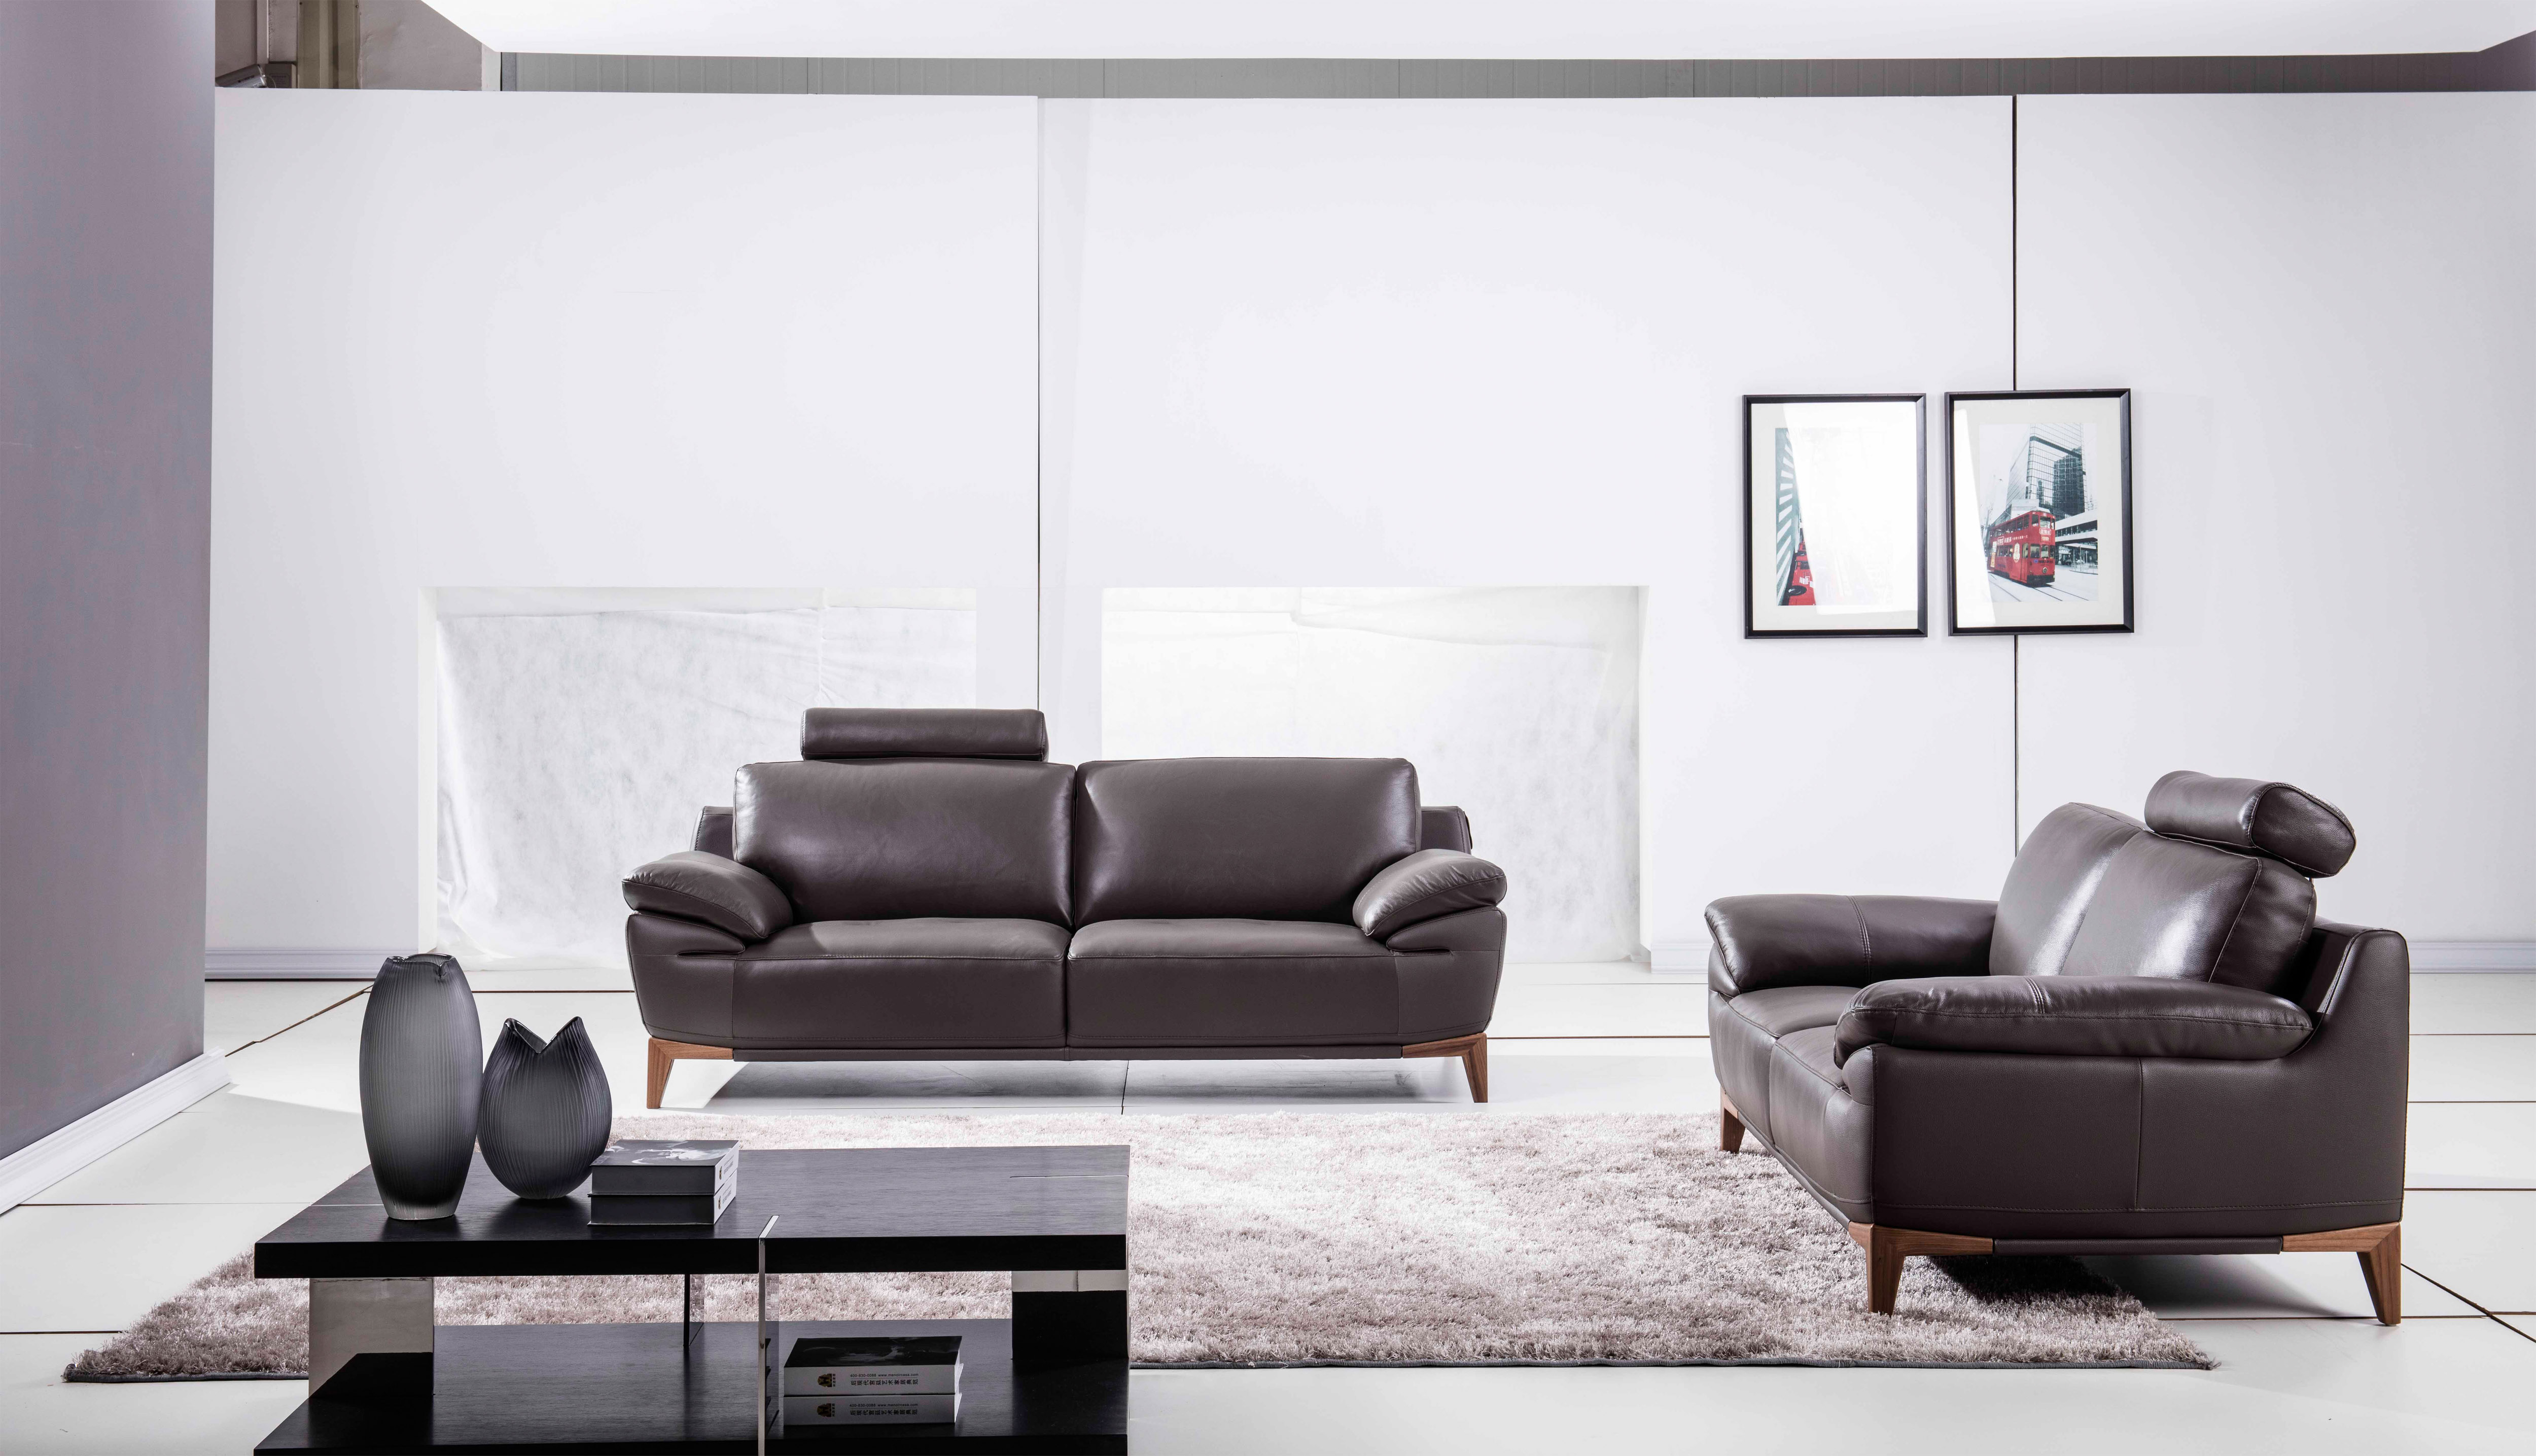 genuine leather sofa sets repair in noida sector 62 premium dark set tulsa oklahoma ...